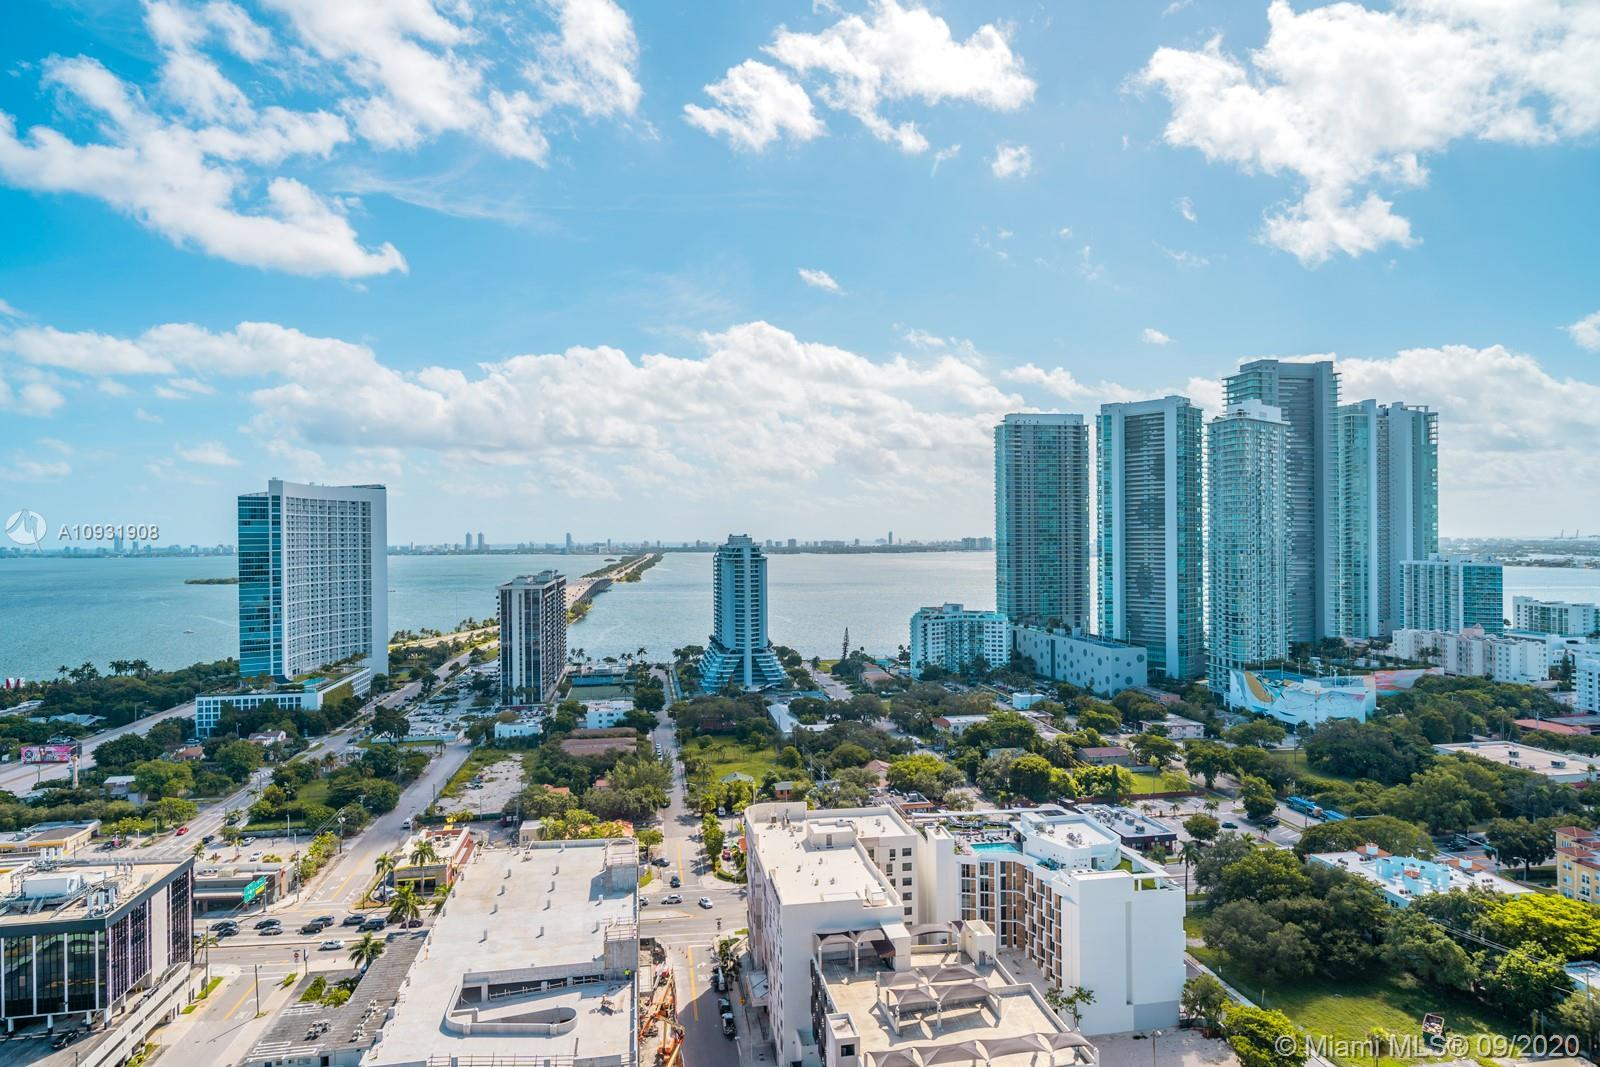 Modern 2BD | 2.5BA Apartment on the 27th Floor of 2 Midtown in Midtown Miami. This apartment offers